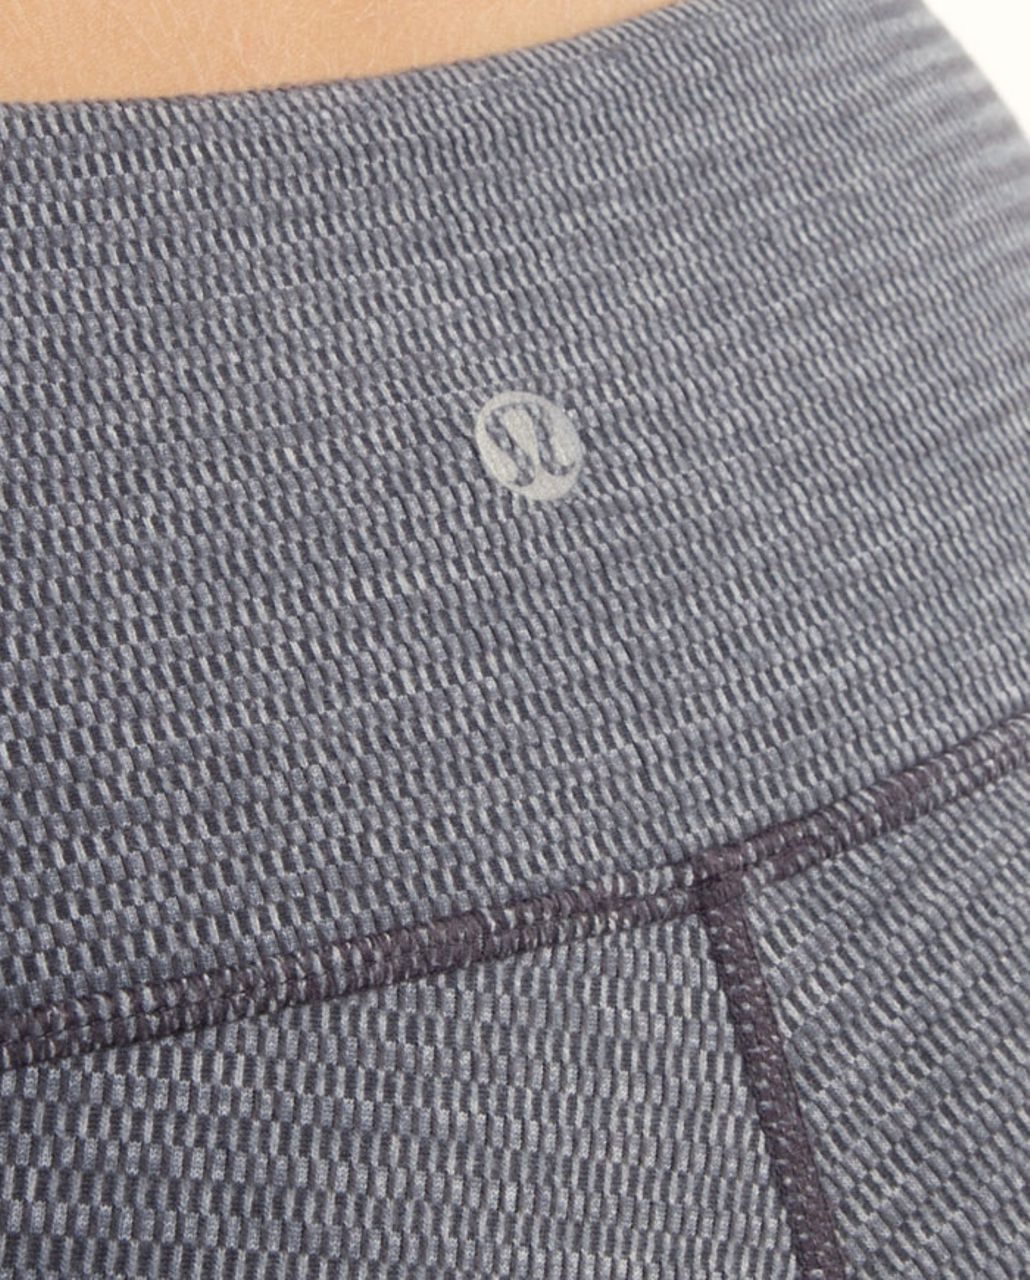 Lululemon Wunder Under Pant *Reversible - Deep Coal Mini Check